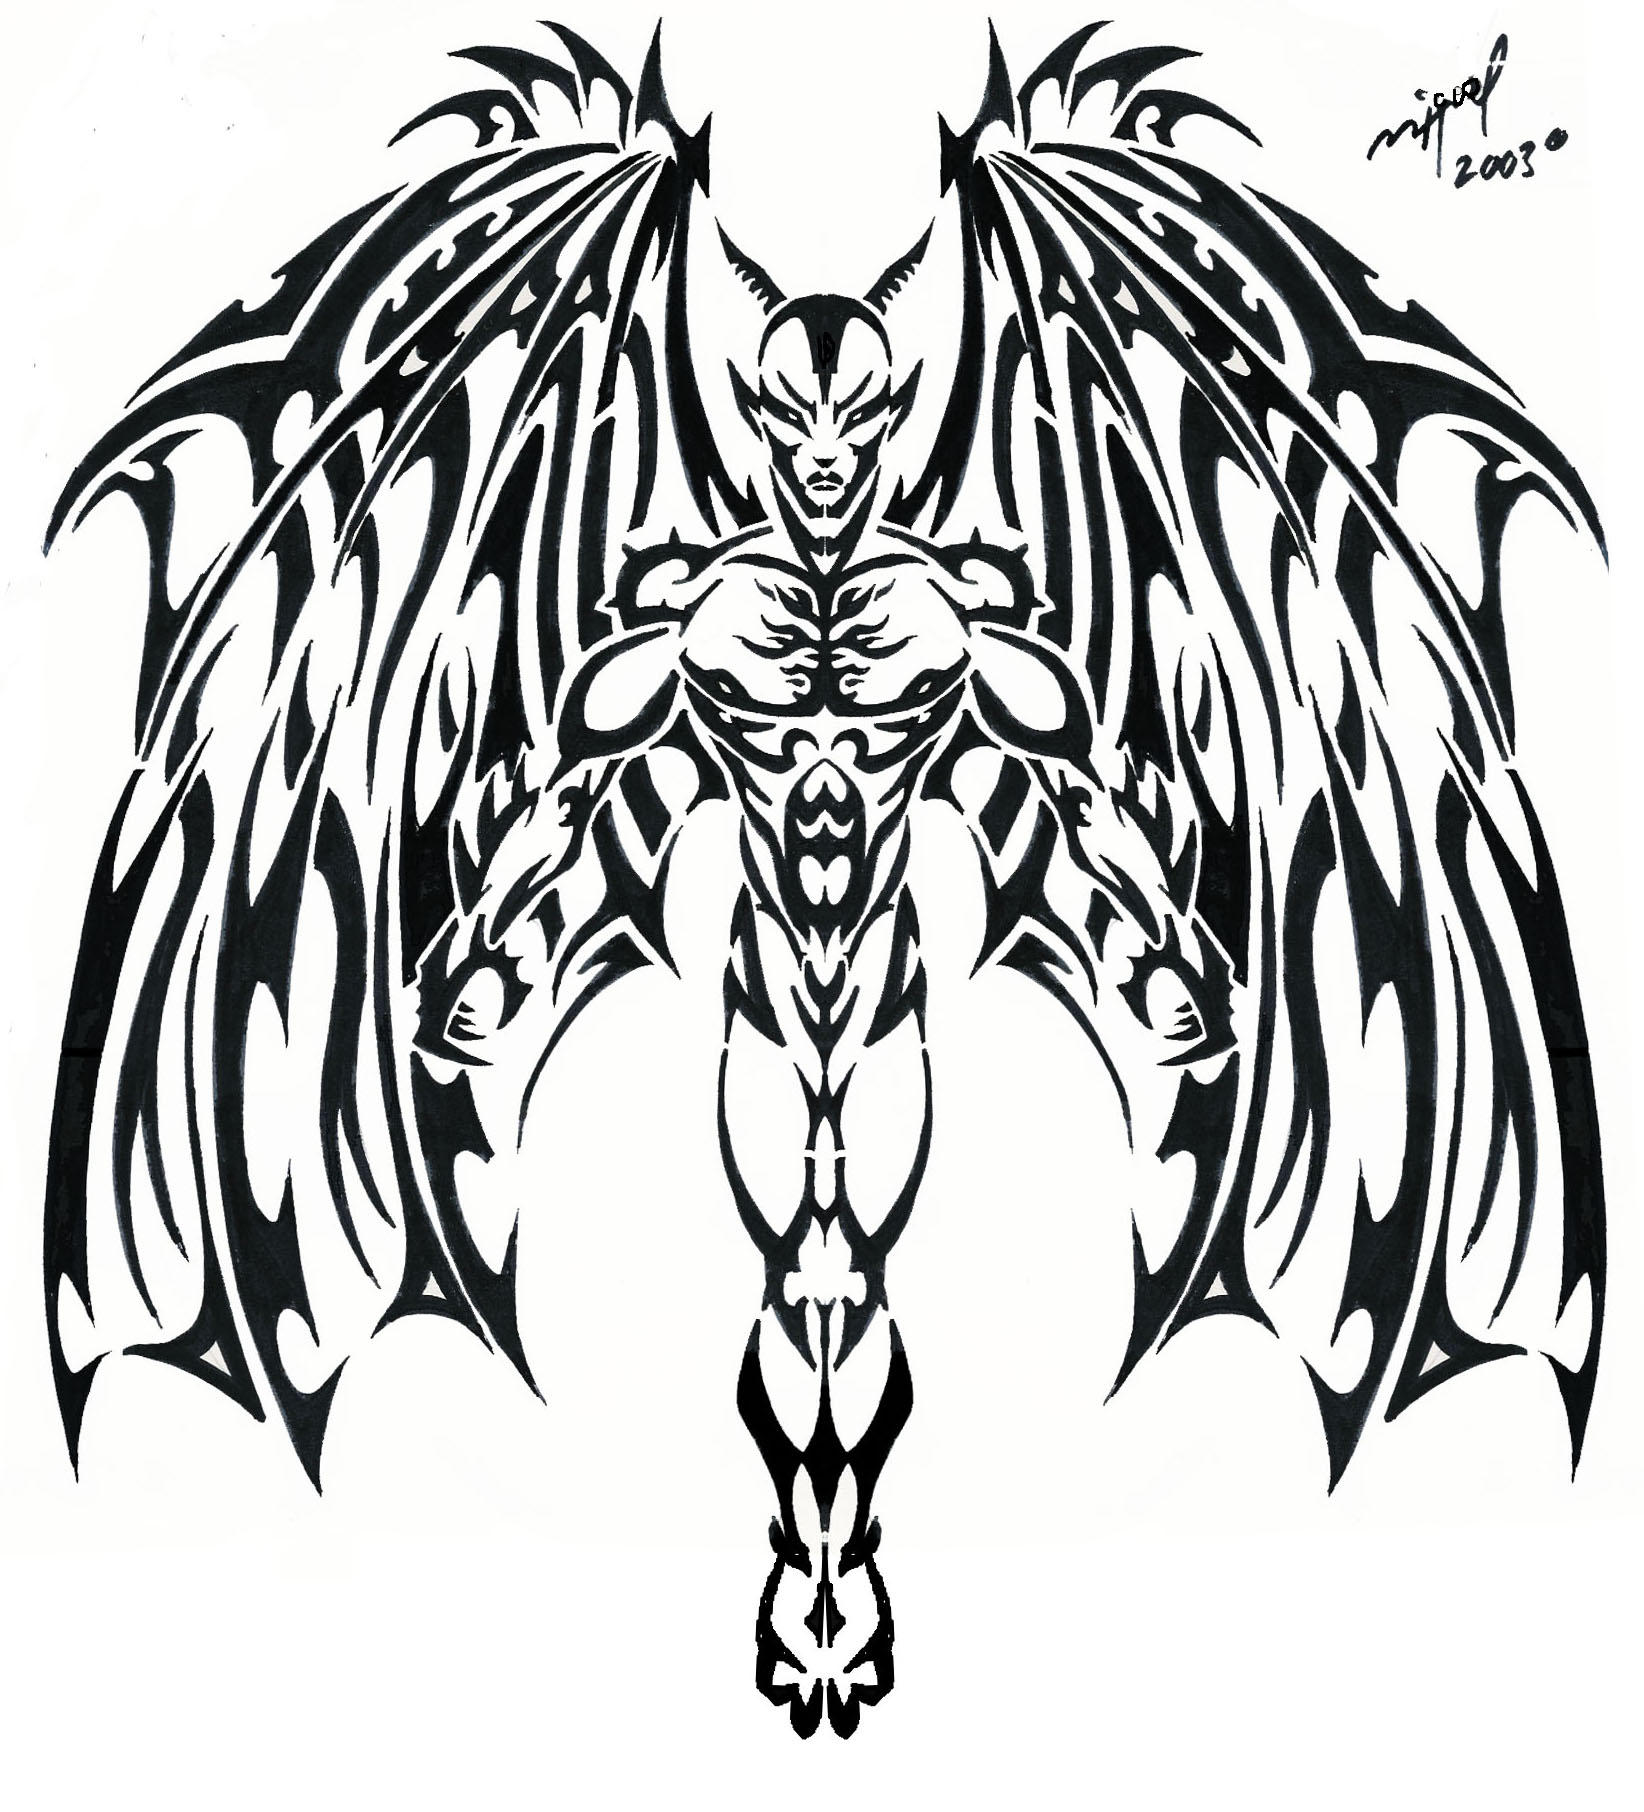 Tattoo Joker furthermore Skull And Demon Tattoo Design 316334324 furthermore Cool Tribal Tattoos And Perfect Tattoos moreover 392728029977651198 additionally Tattoo 01 blogspot. on scary clown killing